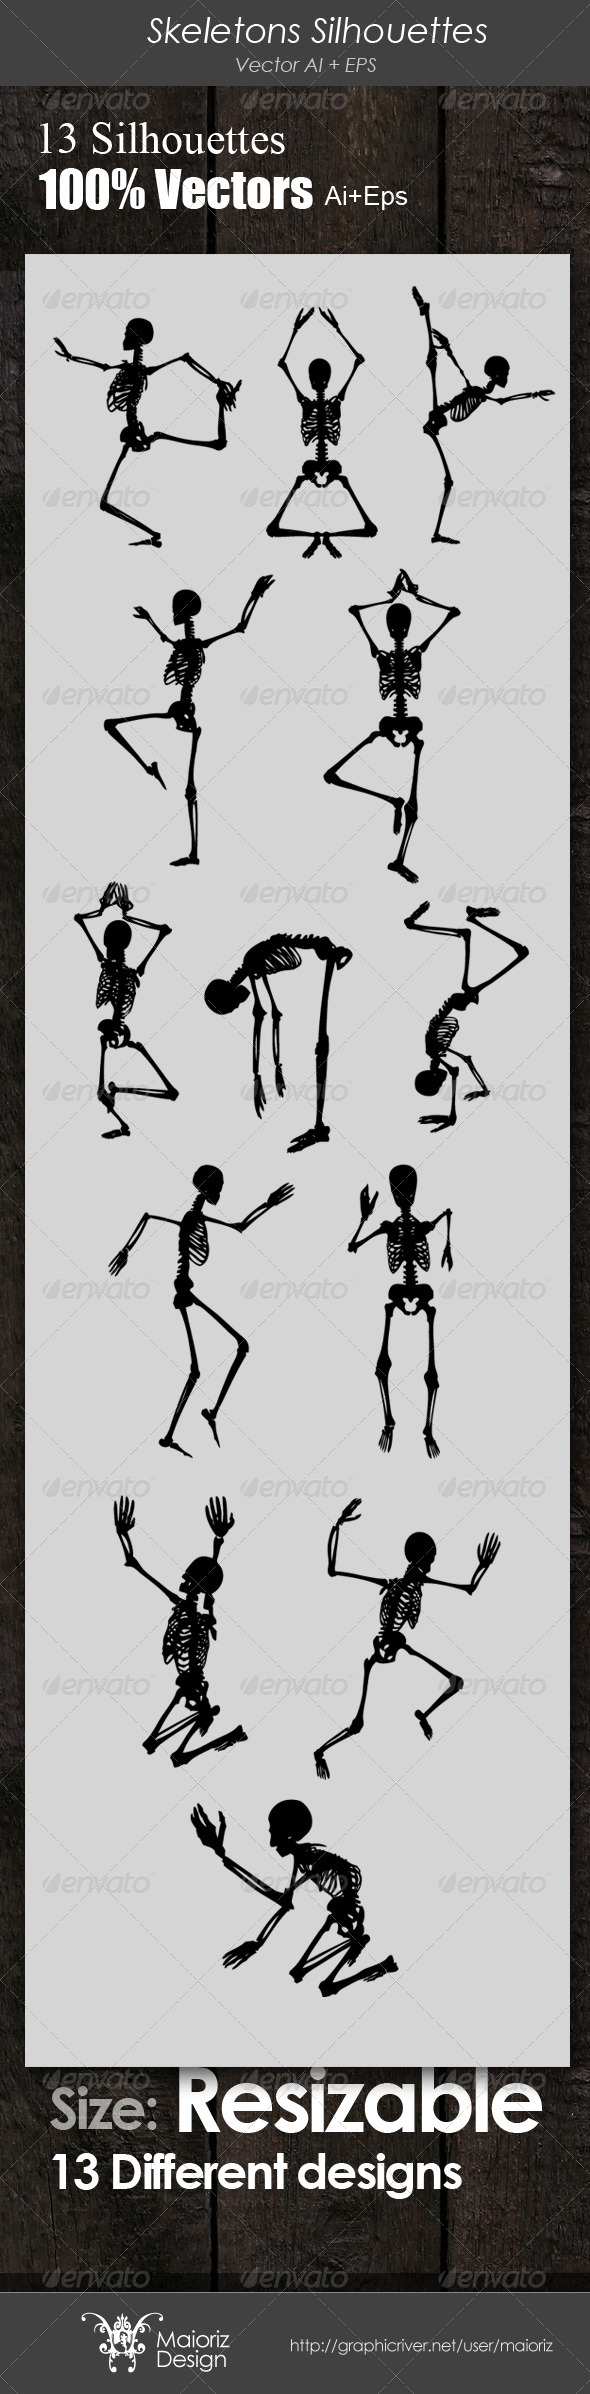 GraphicRiver Skeletons Silhouettes 4027132